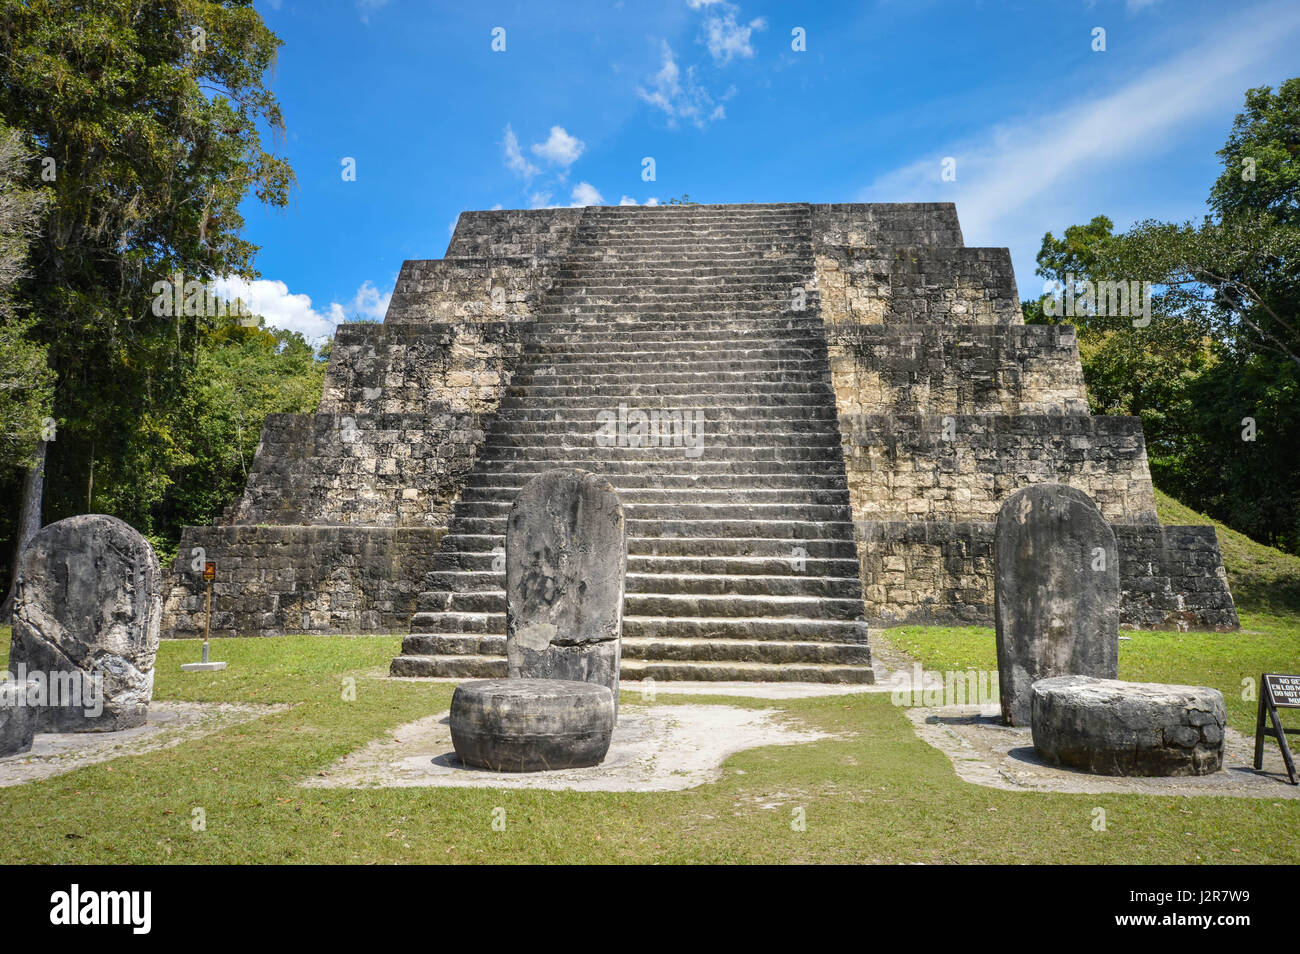 One of the twin pyramids of the Complex Q and numerous stellae in Tikal  National Park and archaeological site, Guatemala. Central America